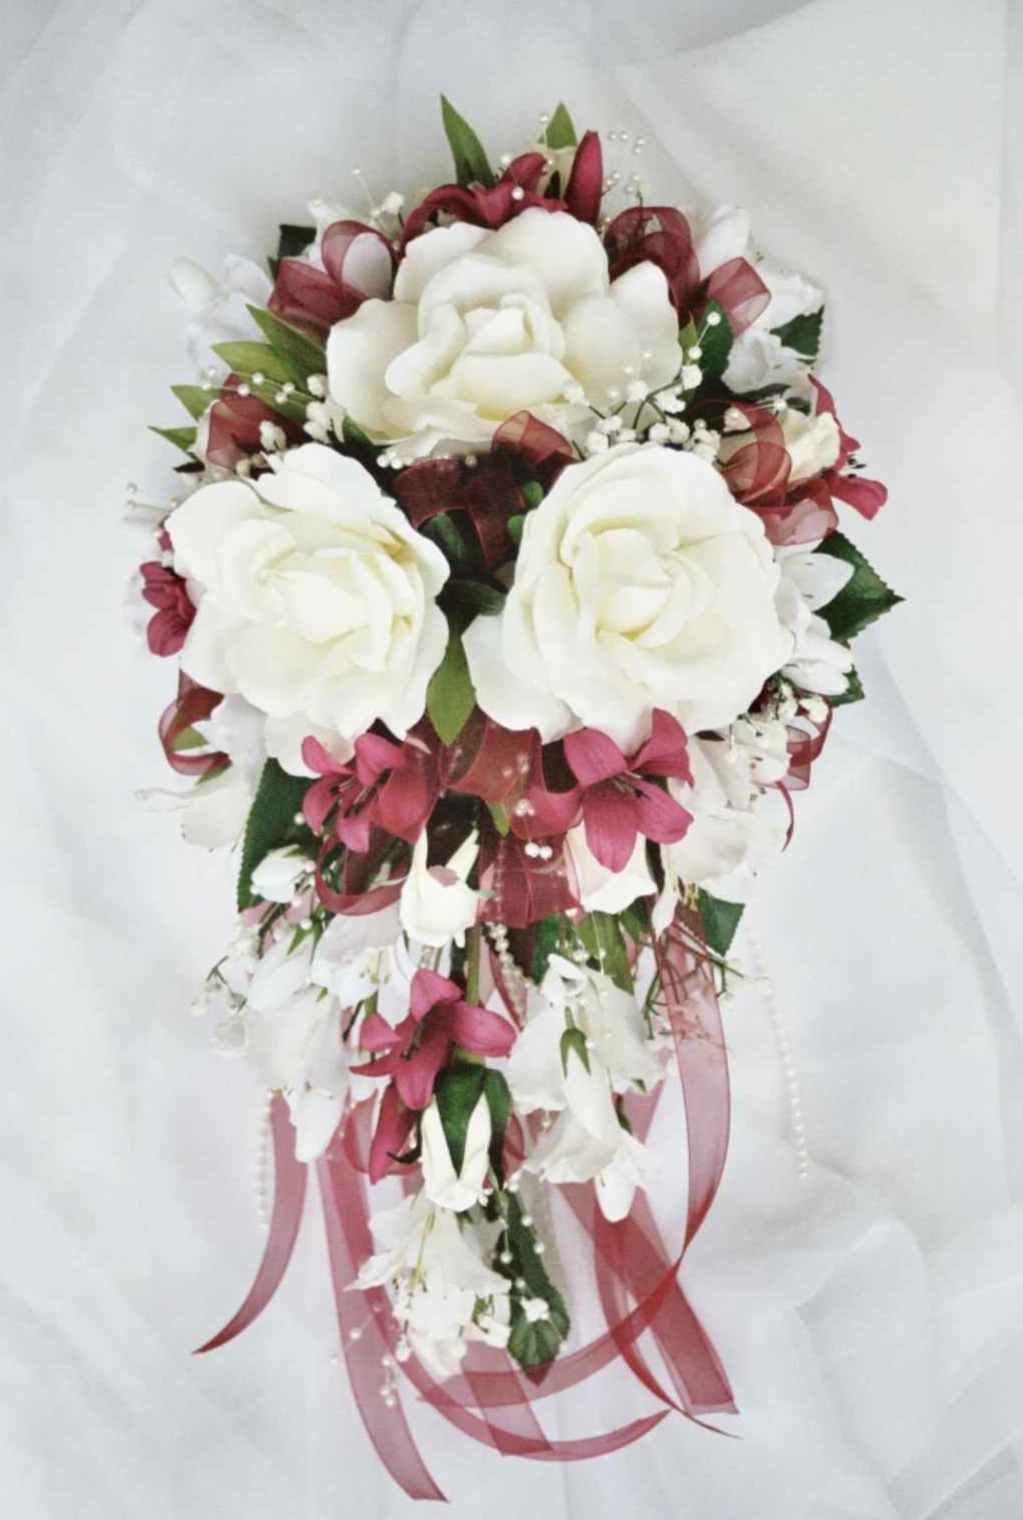 about marriage marriage flower bouquet 2013 wedding ForBridal Flower Bouquets Ideas